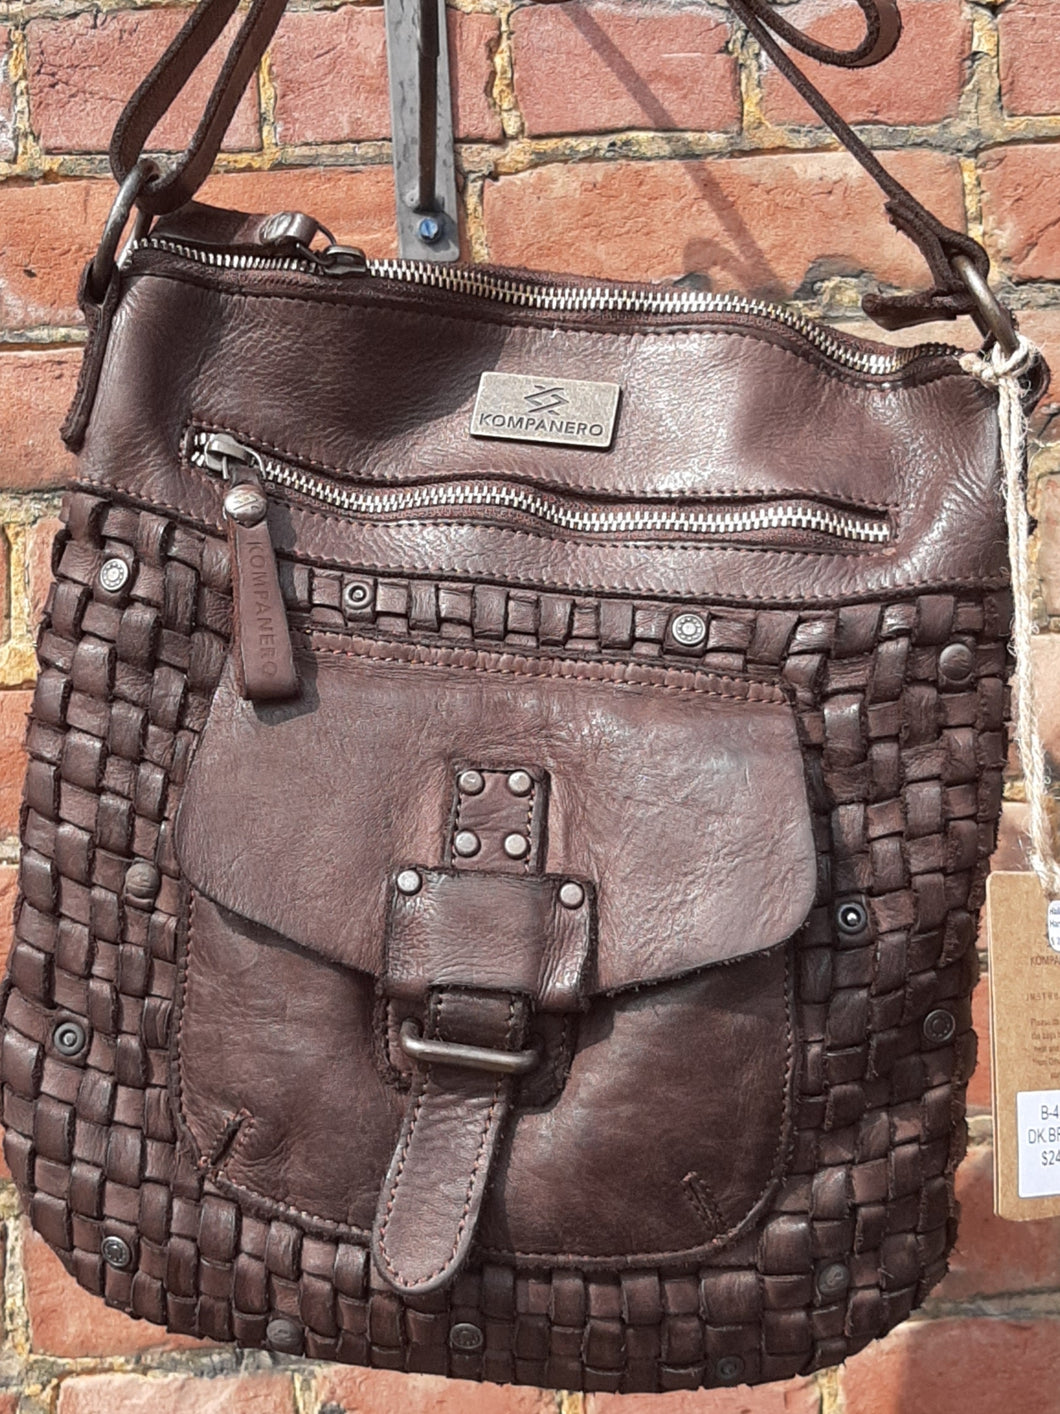 Kompanero Leather Hand Bag - Hailey (Dk Brown)